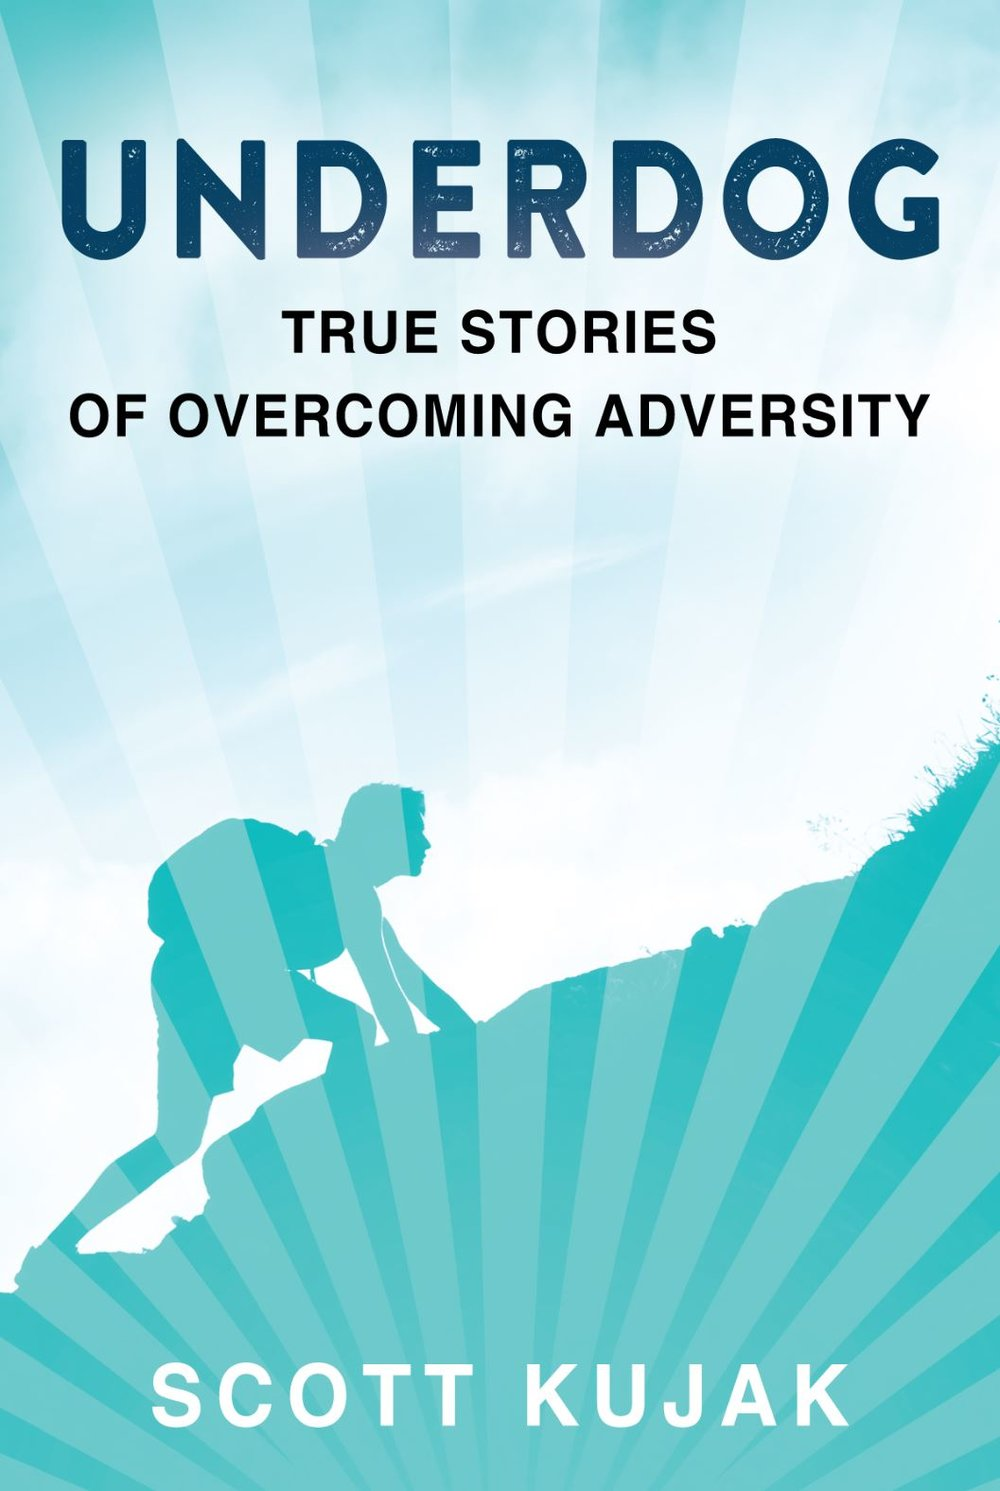 Underdog Book Front Cover.JPG